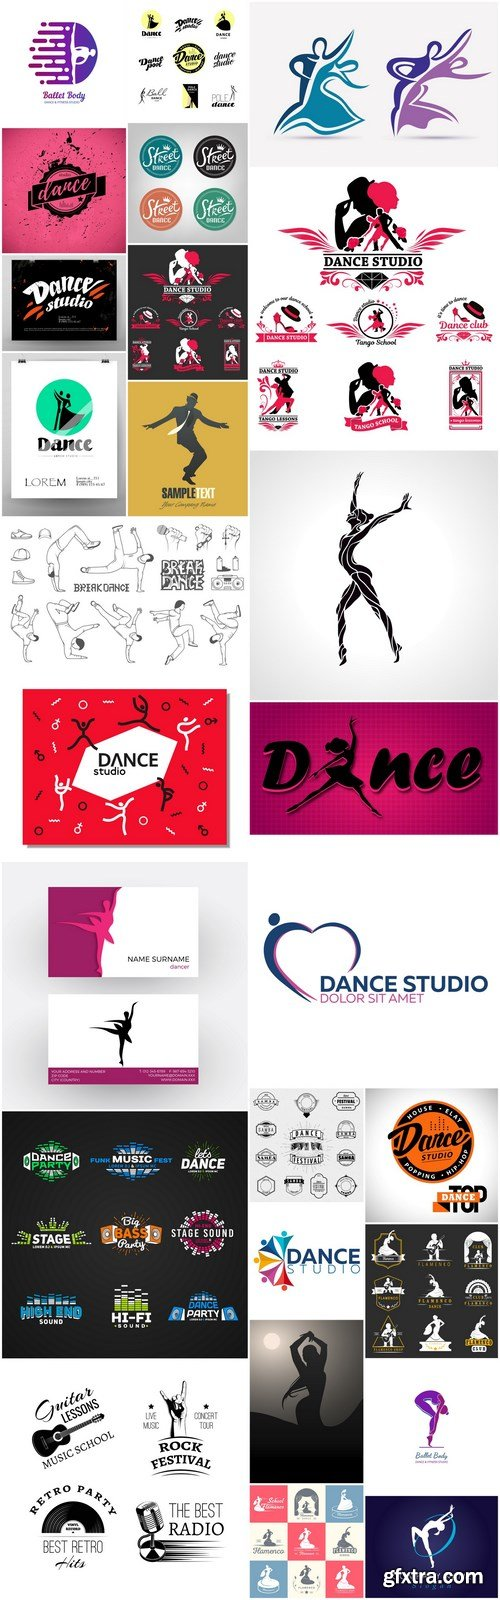 Dance Studio Logo - 26 Vector